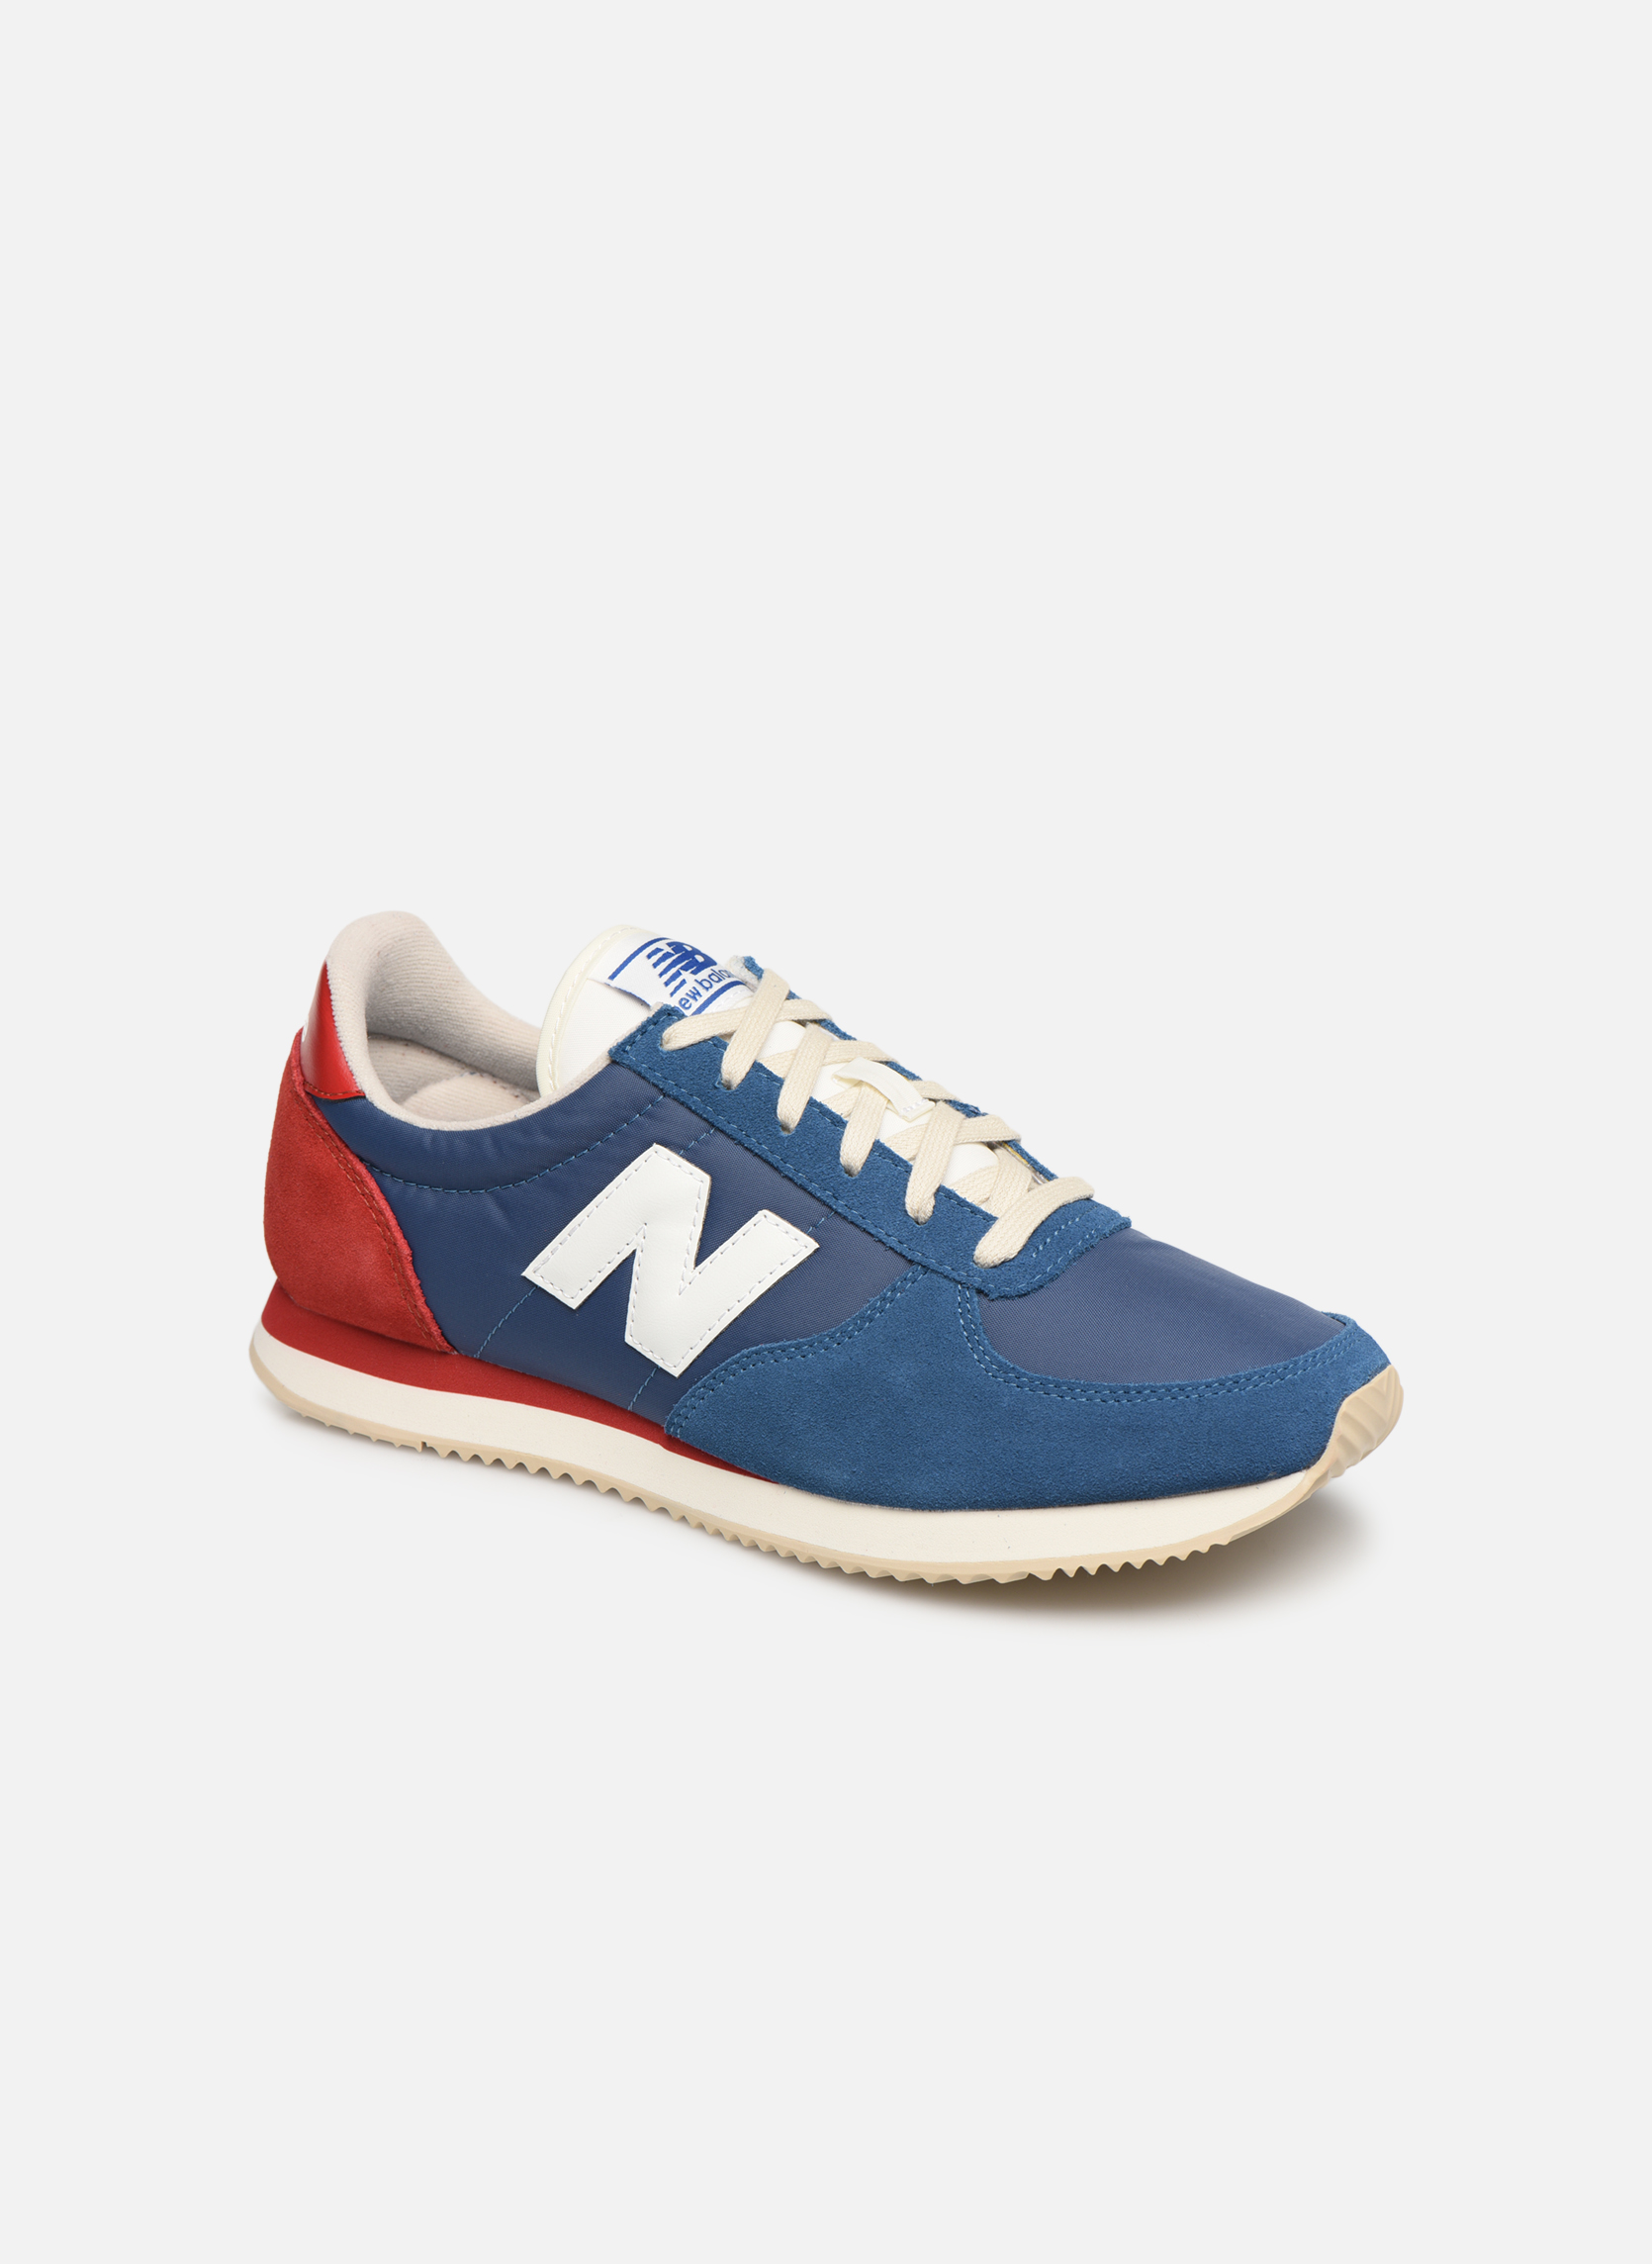 Sneakers U220 by New Balance